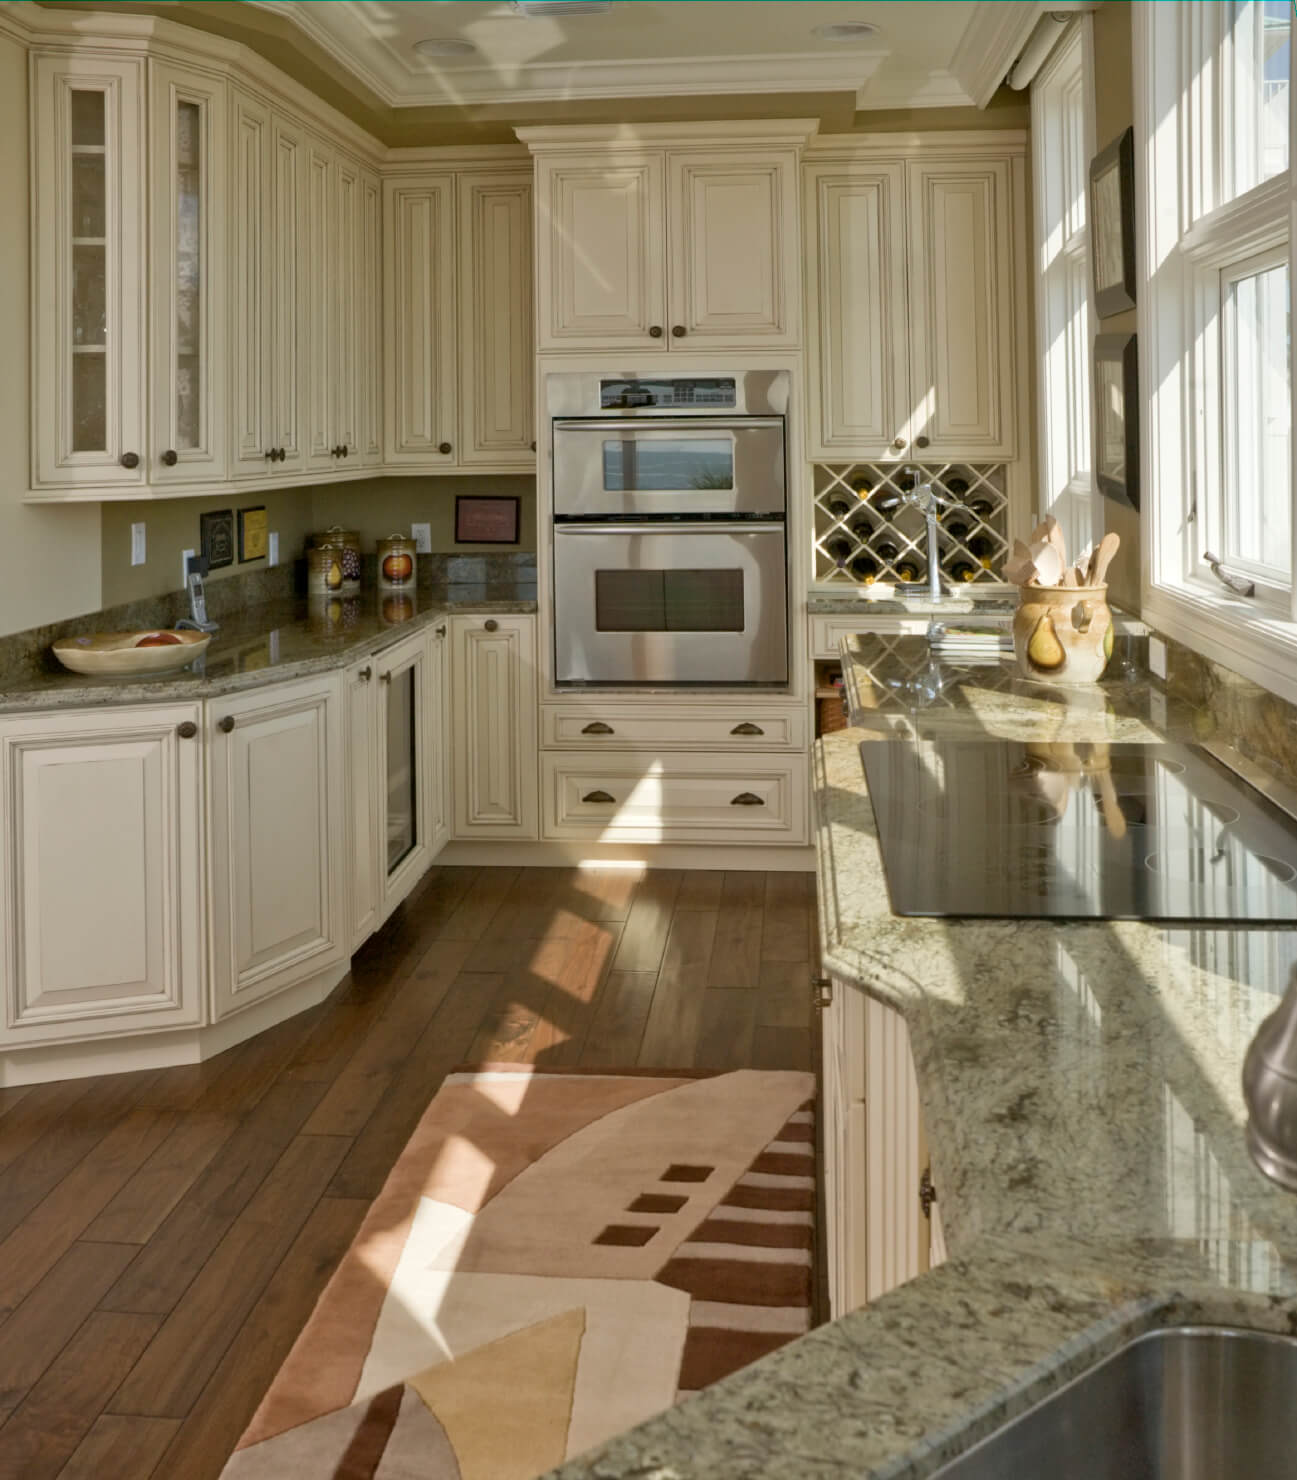 white kitchen designs pictures kitchens with white cabinets Treated white cabinets add to the old fashioned look in this compact kitchen featuring geometric rug